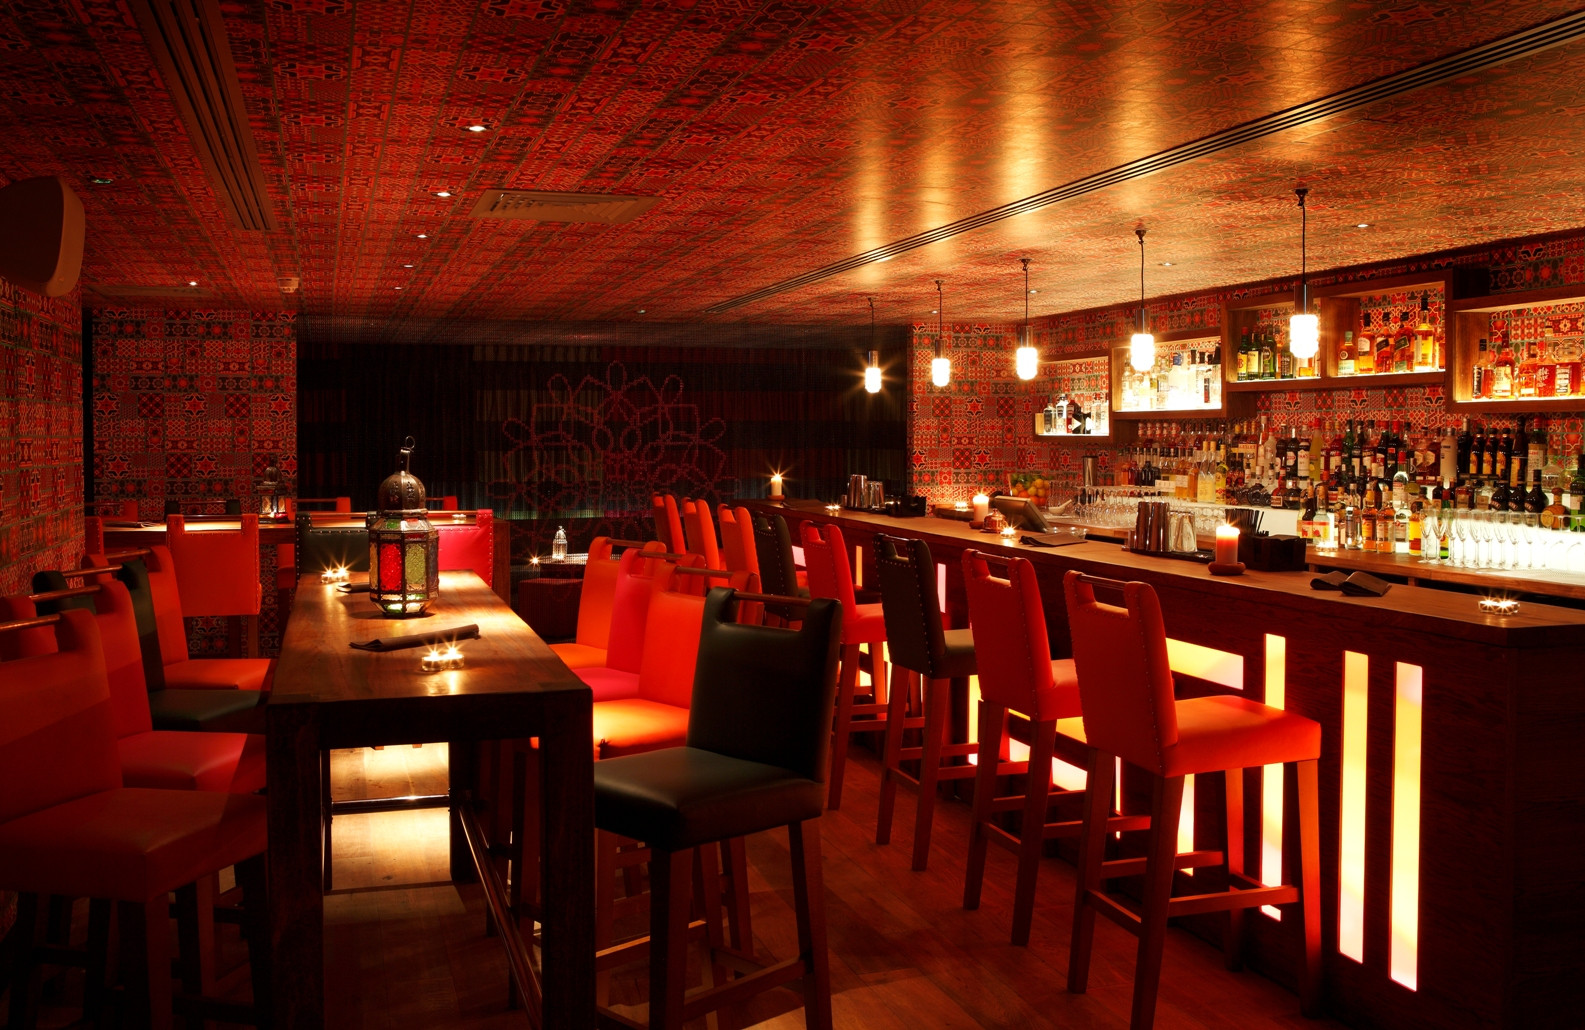 red interior walls restaurant lighting